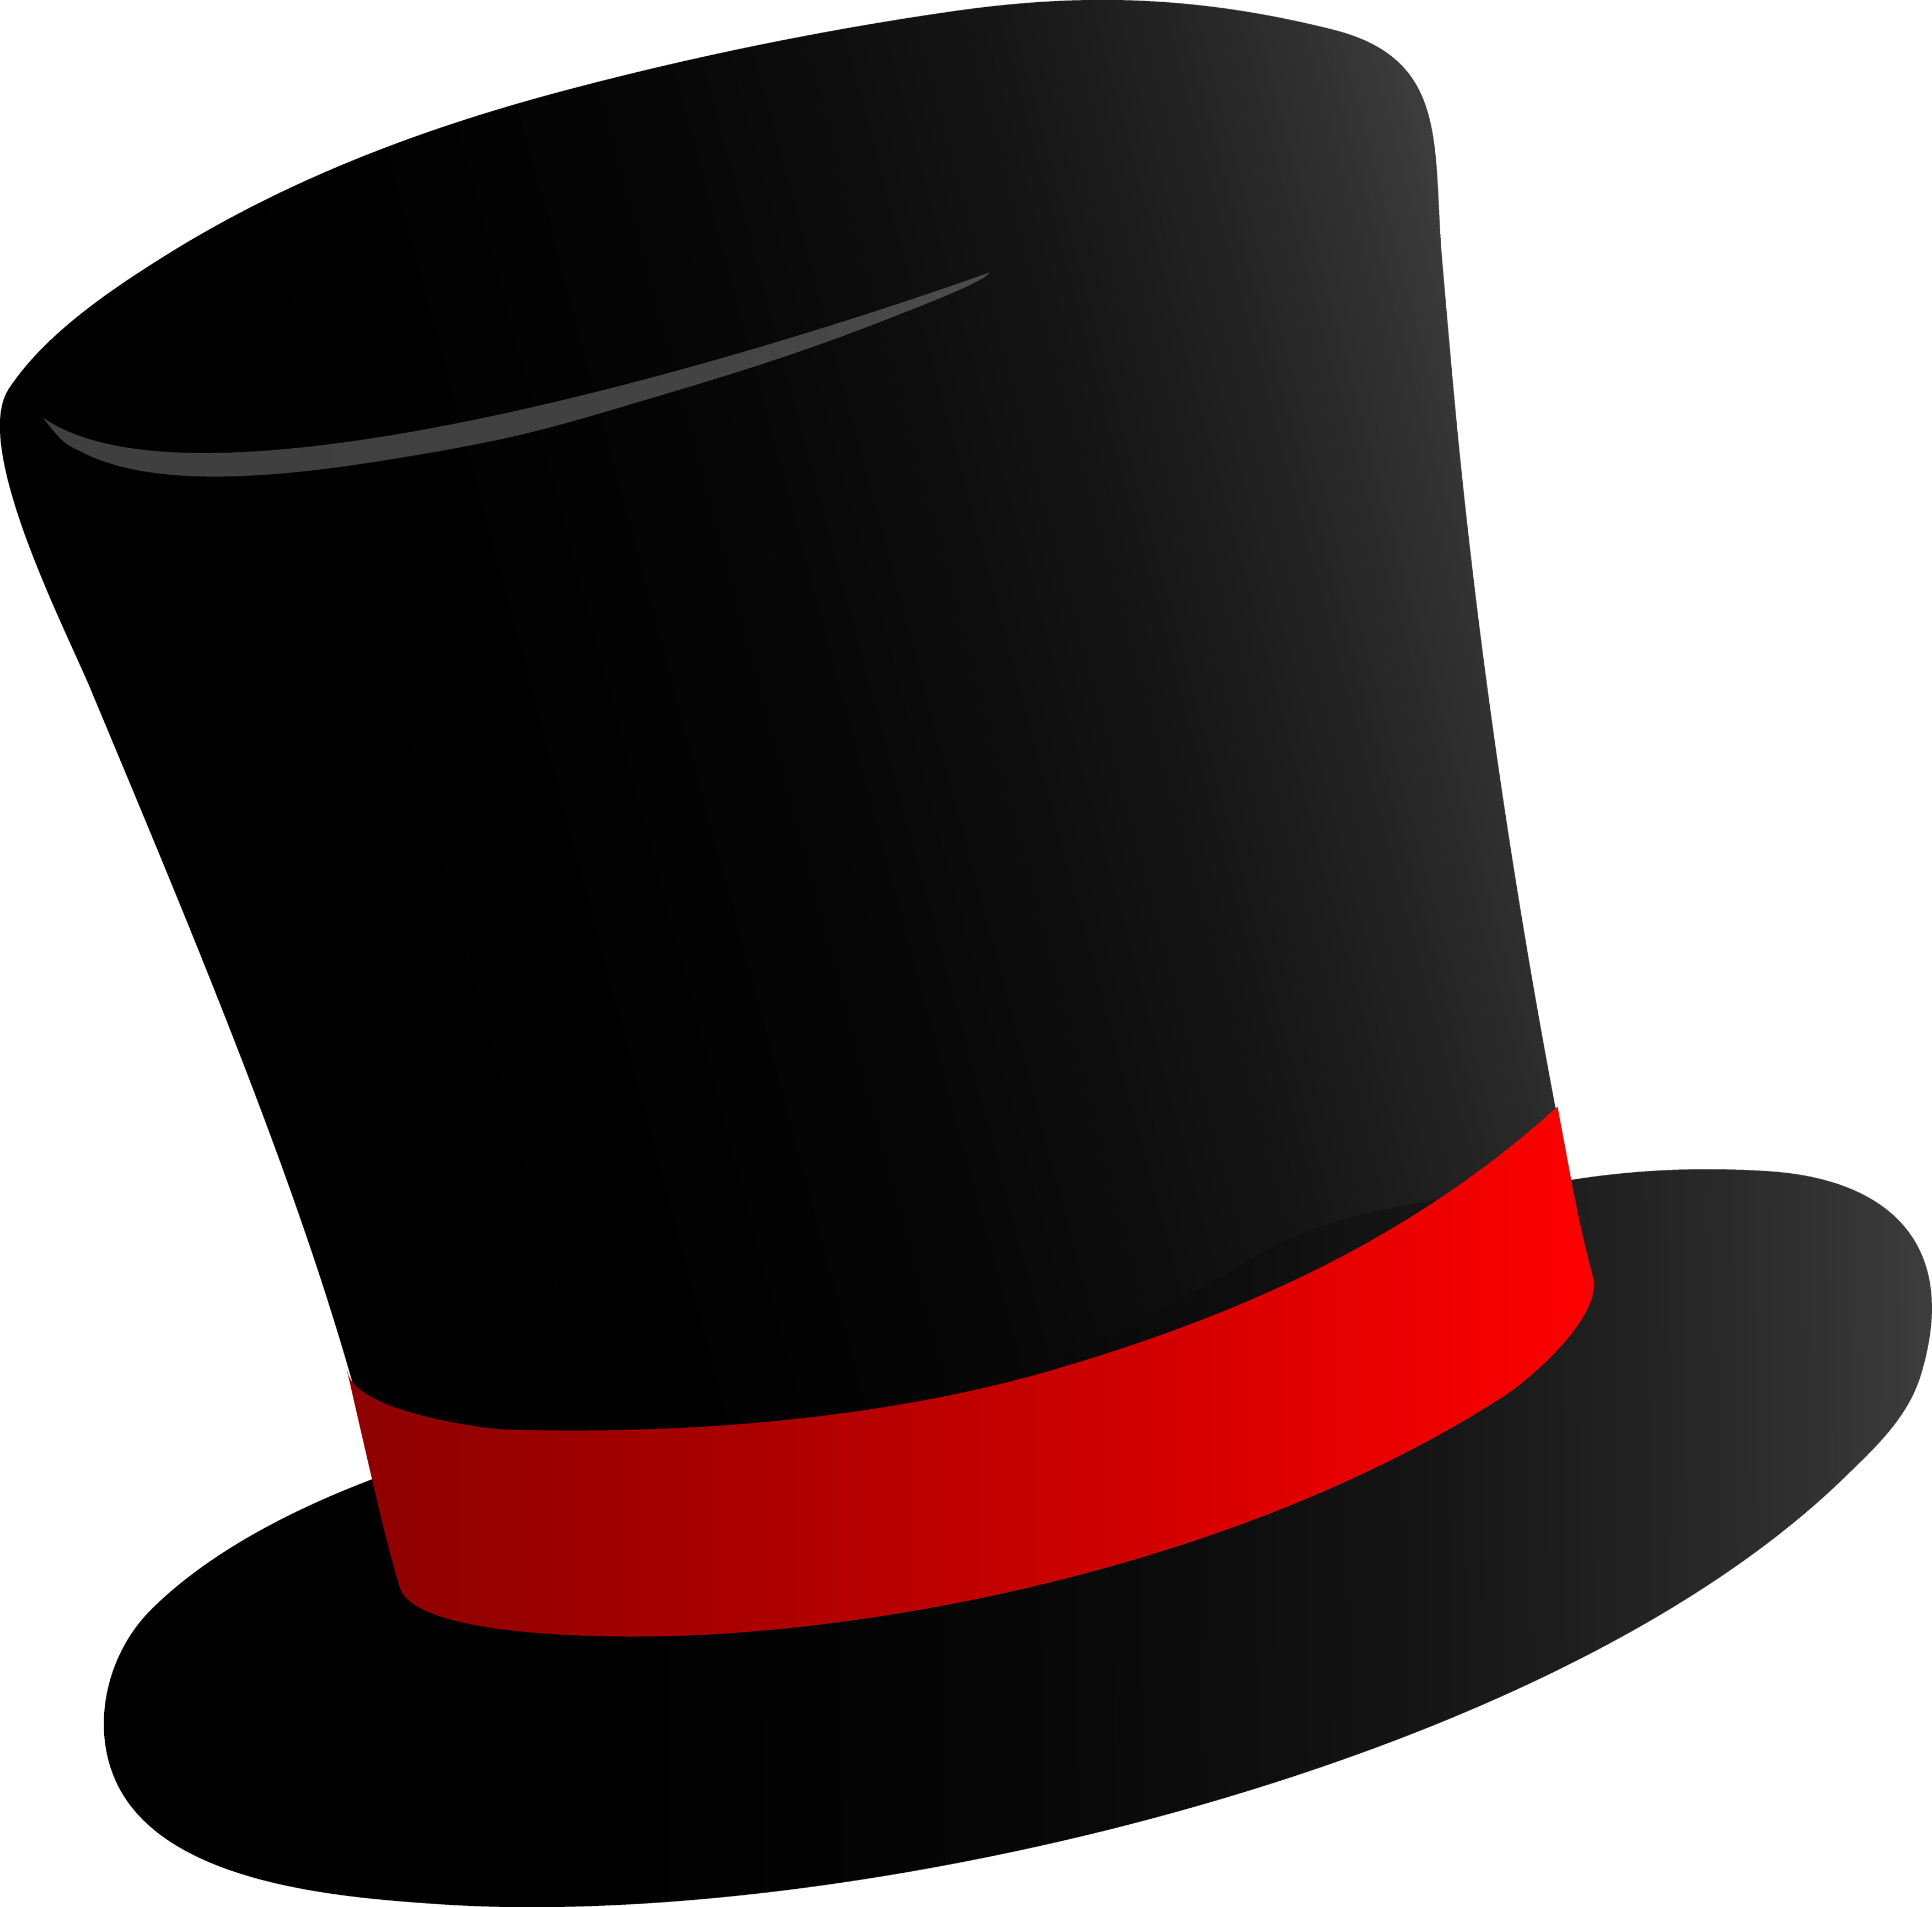 Magic top hat clipart png royalty free library Pin by Next on Clipart | Hat template, Black top hat ... png royalty free library